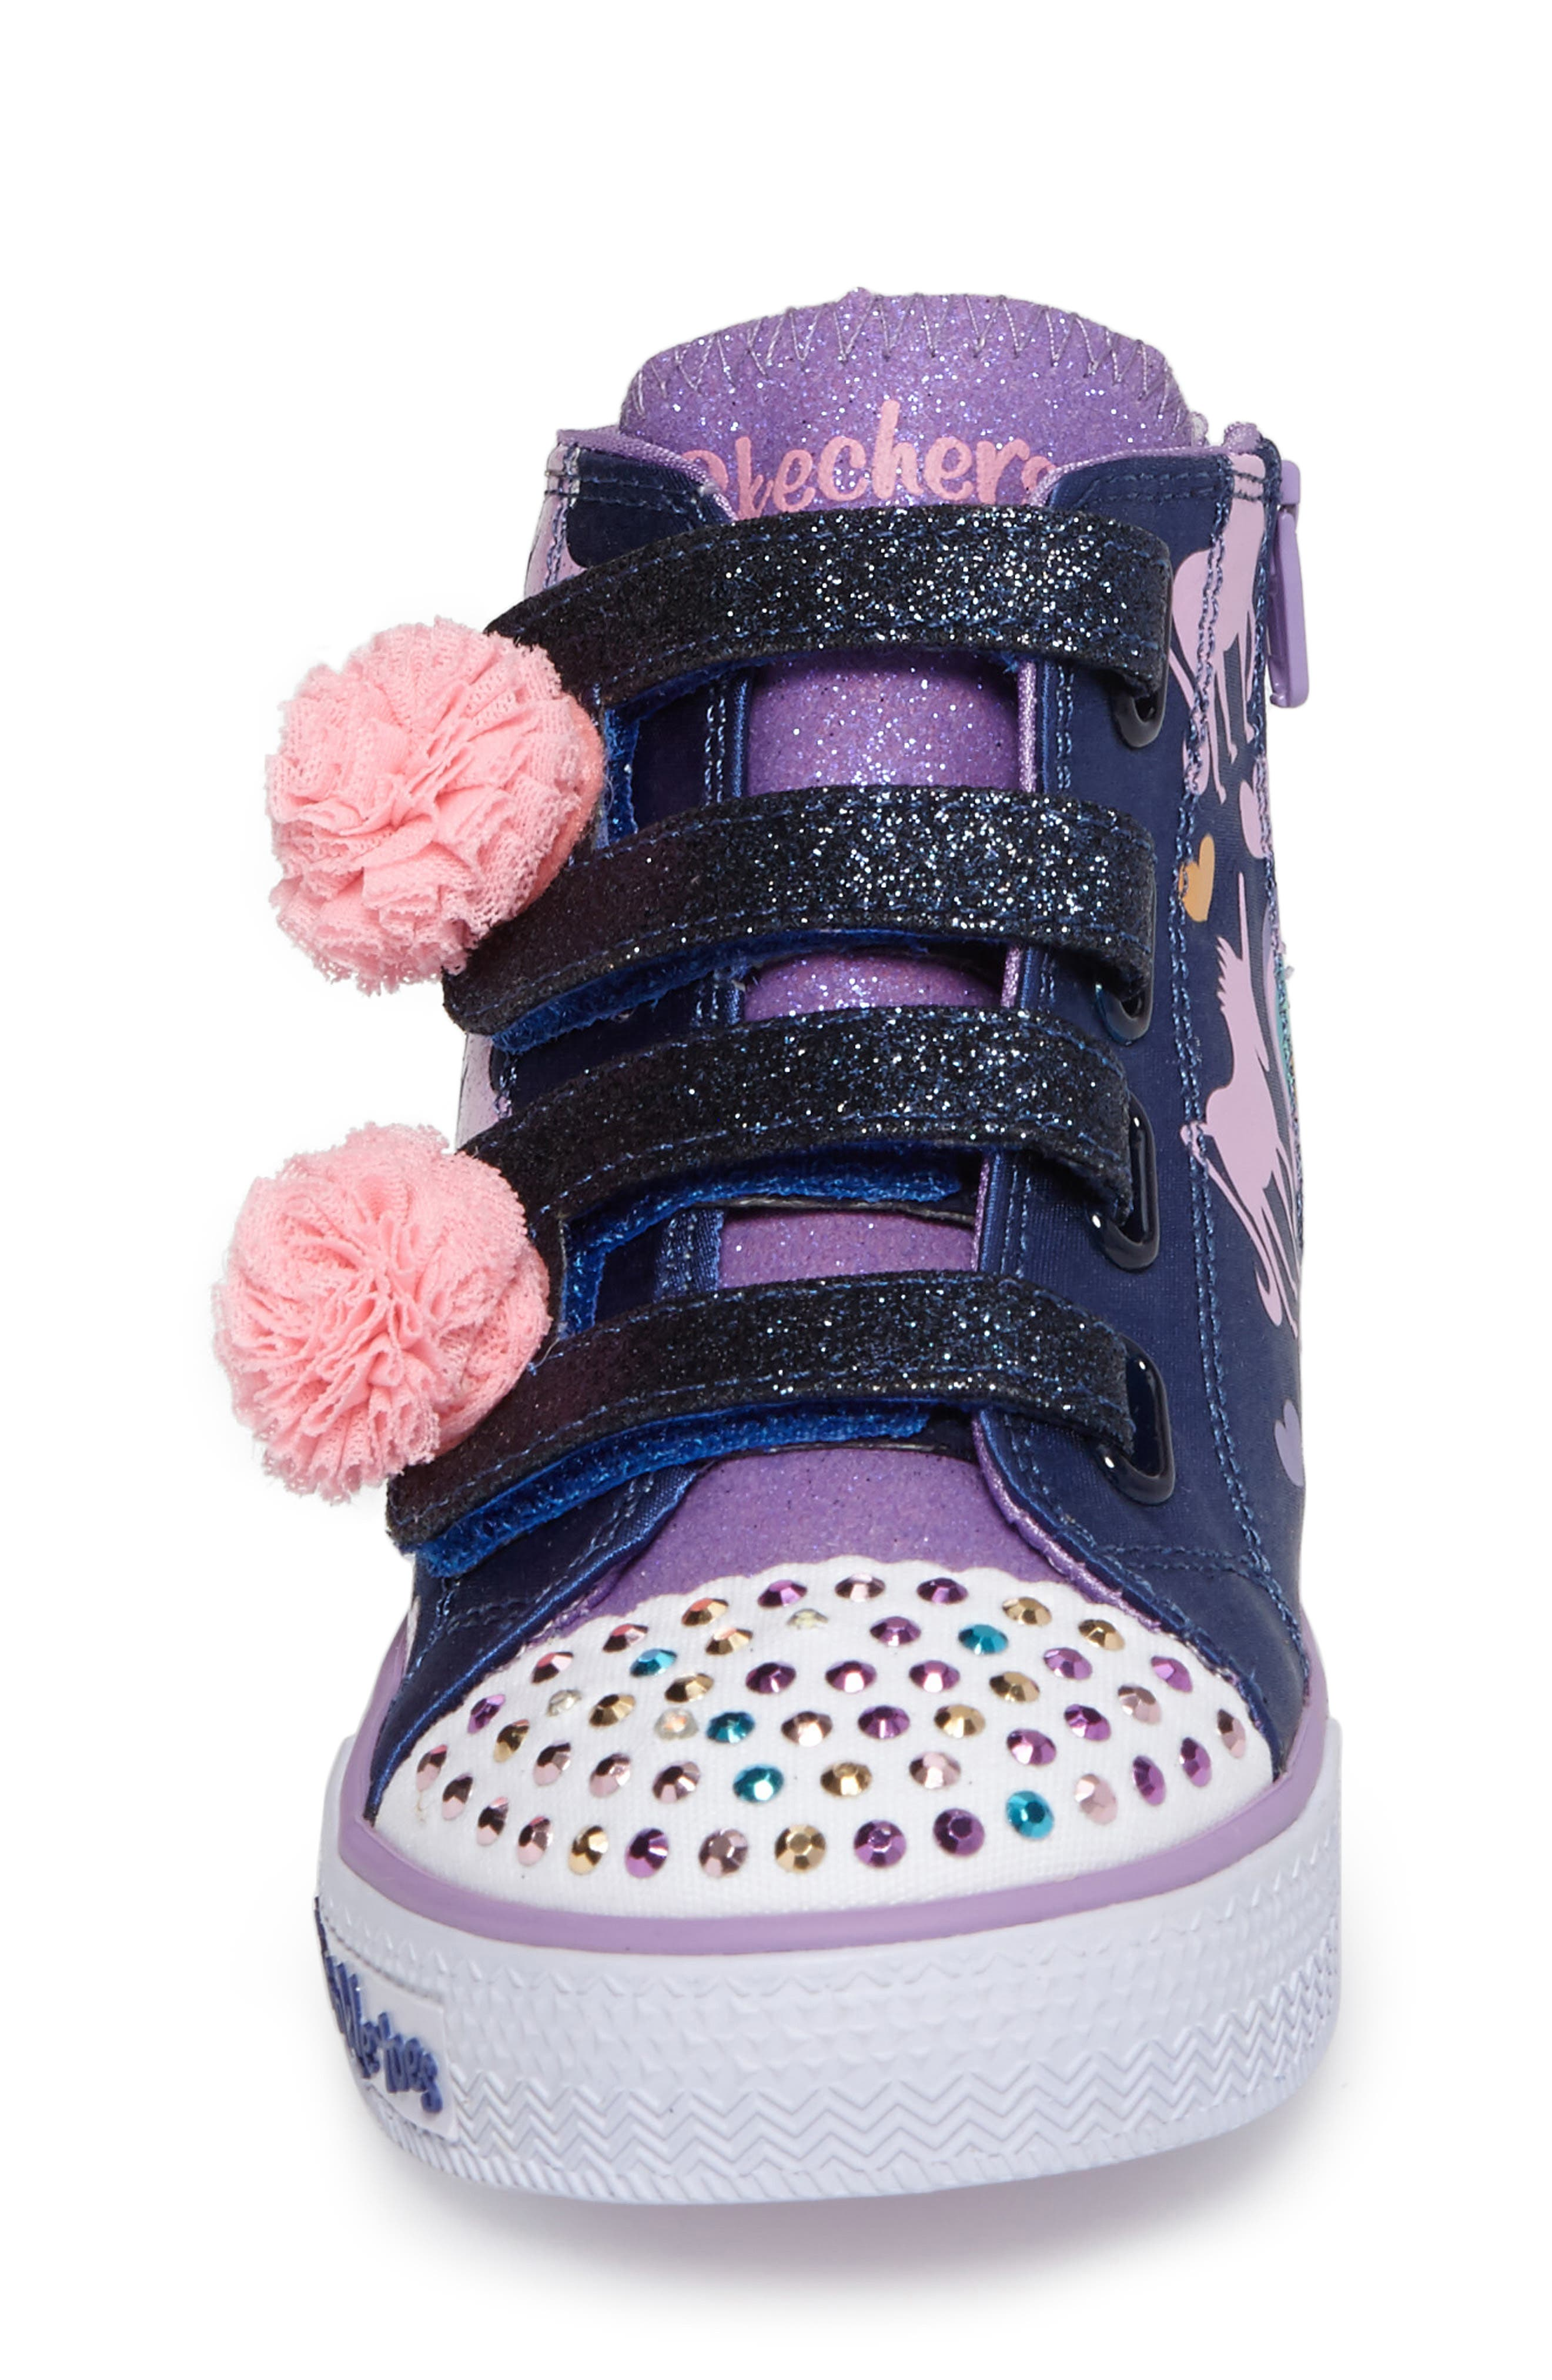 Twinkle Toes Shuffles High Top Sneaker,                             Alternate thumbnail 4, color,                             400